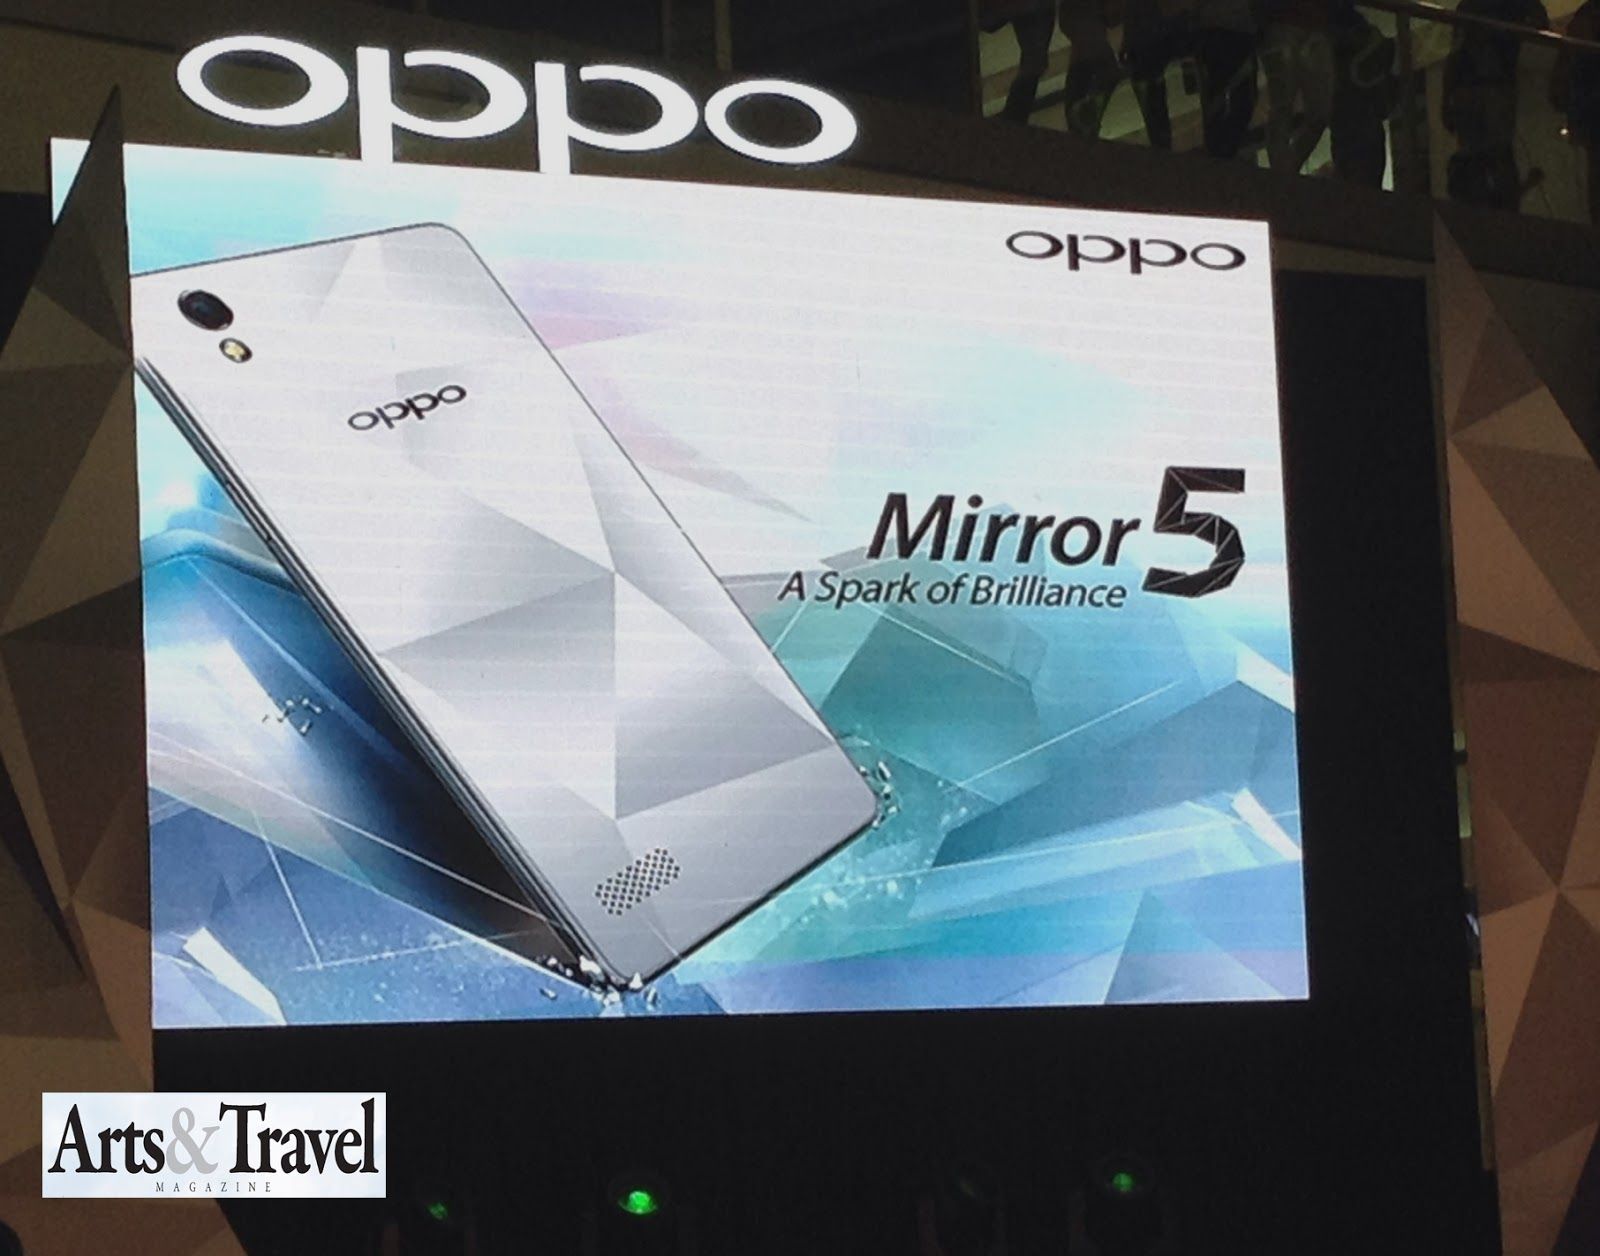 A Spark Of Brilliance Oppo Launches Mirror 5 And Presents Sarah 16gb Create That In Your Life The